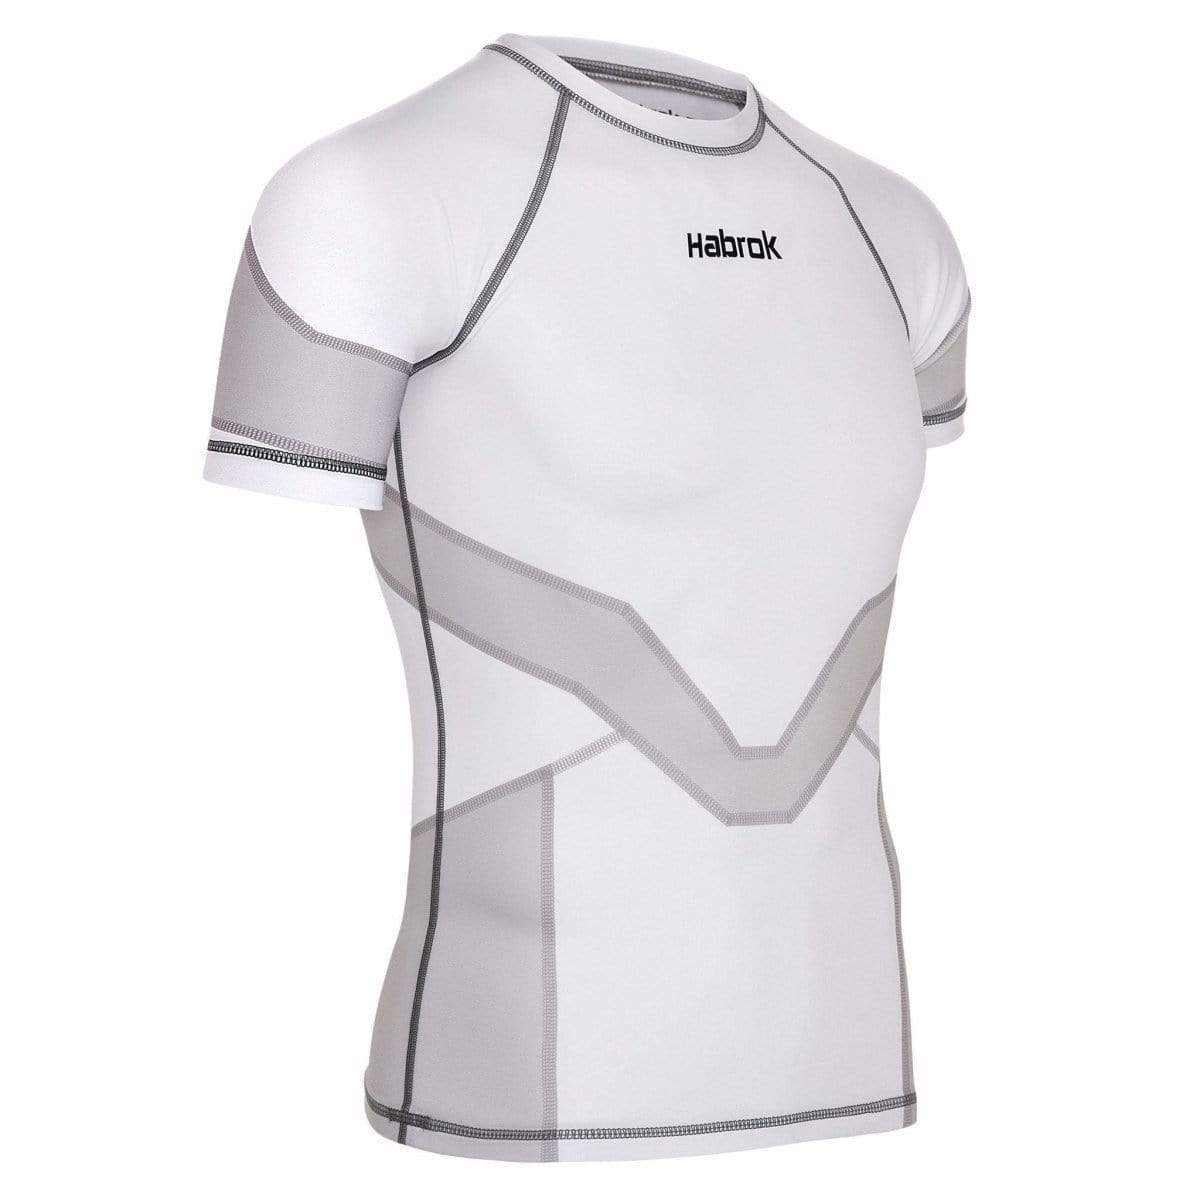 Habrok Rash Guard XS / GREY Transform 2.0 | Ranked Rash Guard Women | Half Sleeve